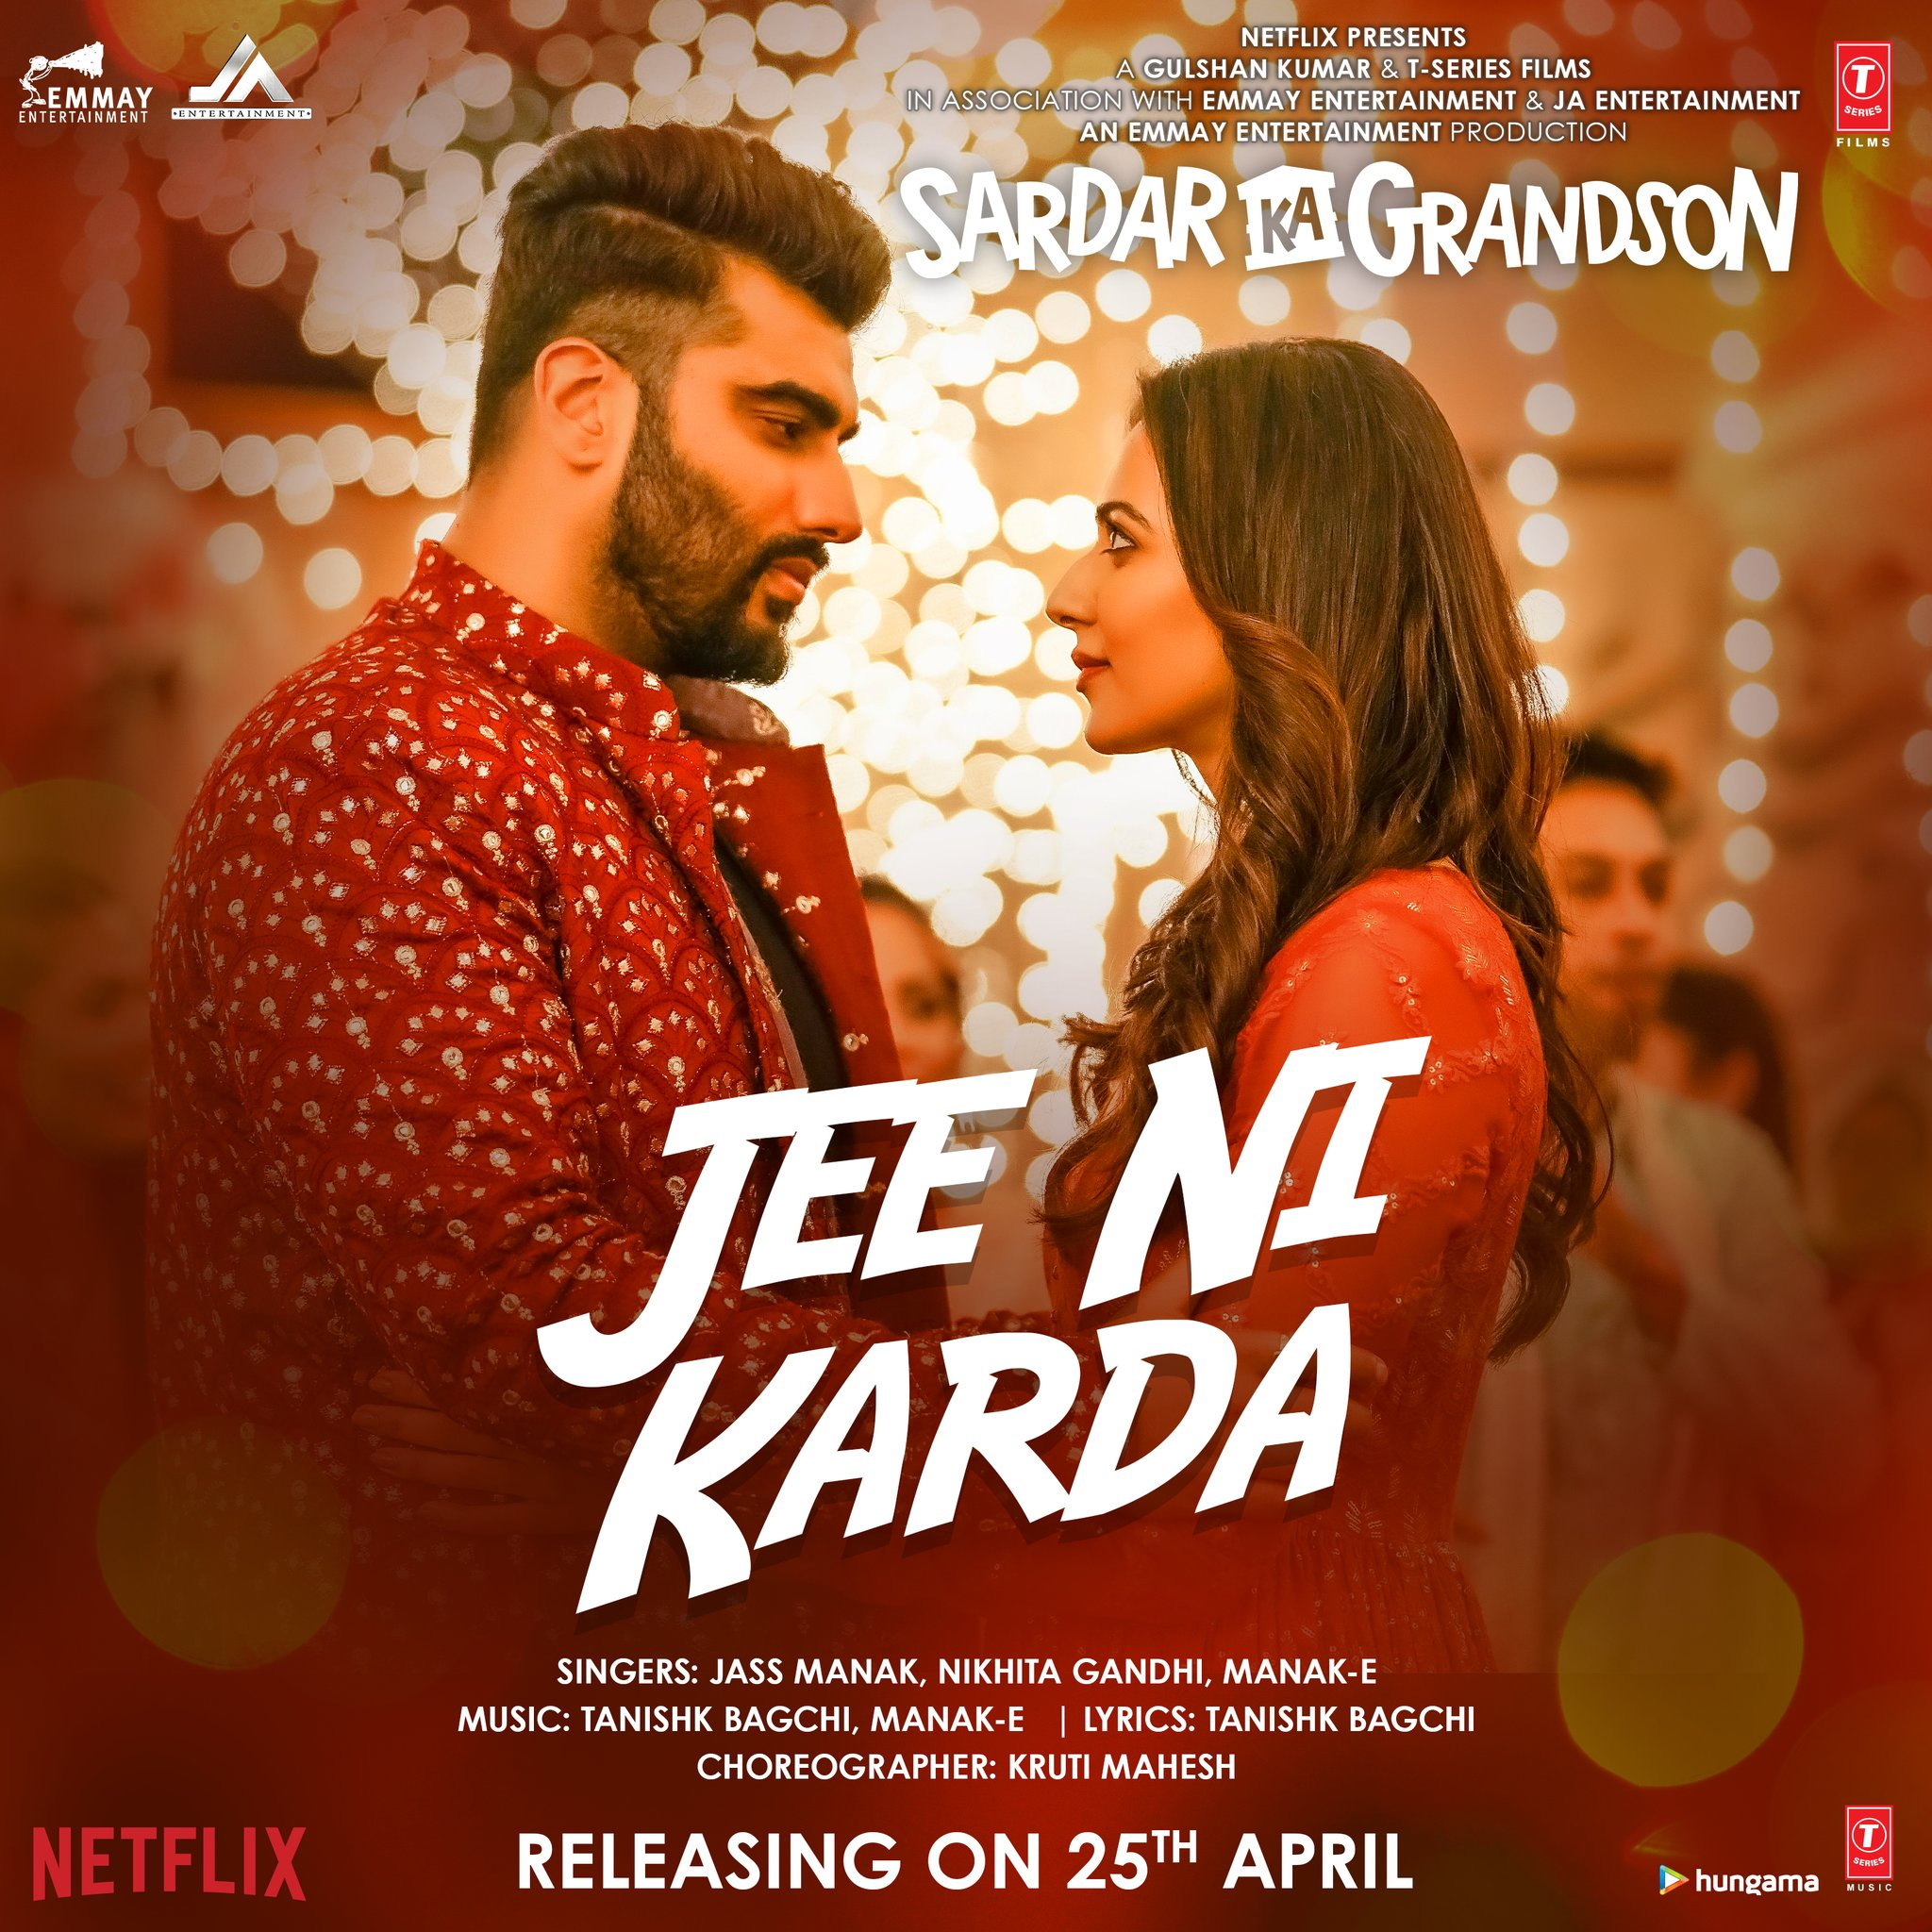 Jee Ni Karda (Sardar Ka Grandson) 2021 Hindi Video Song 1080p HDRip 55MB Download